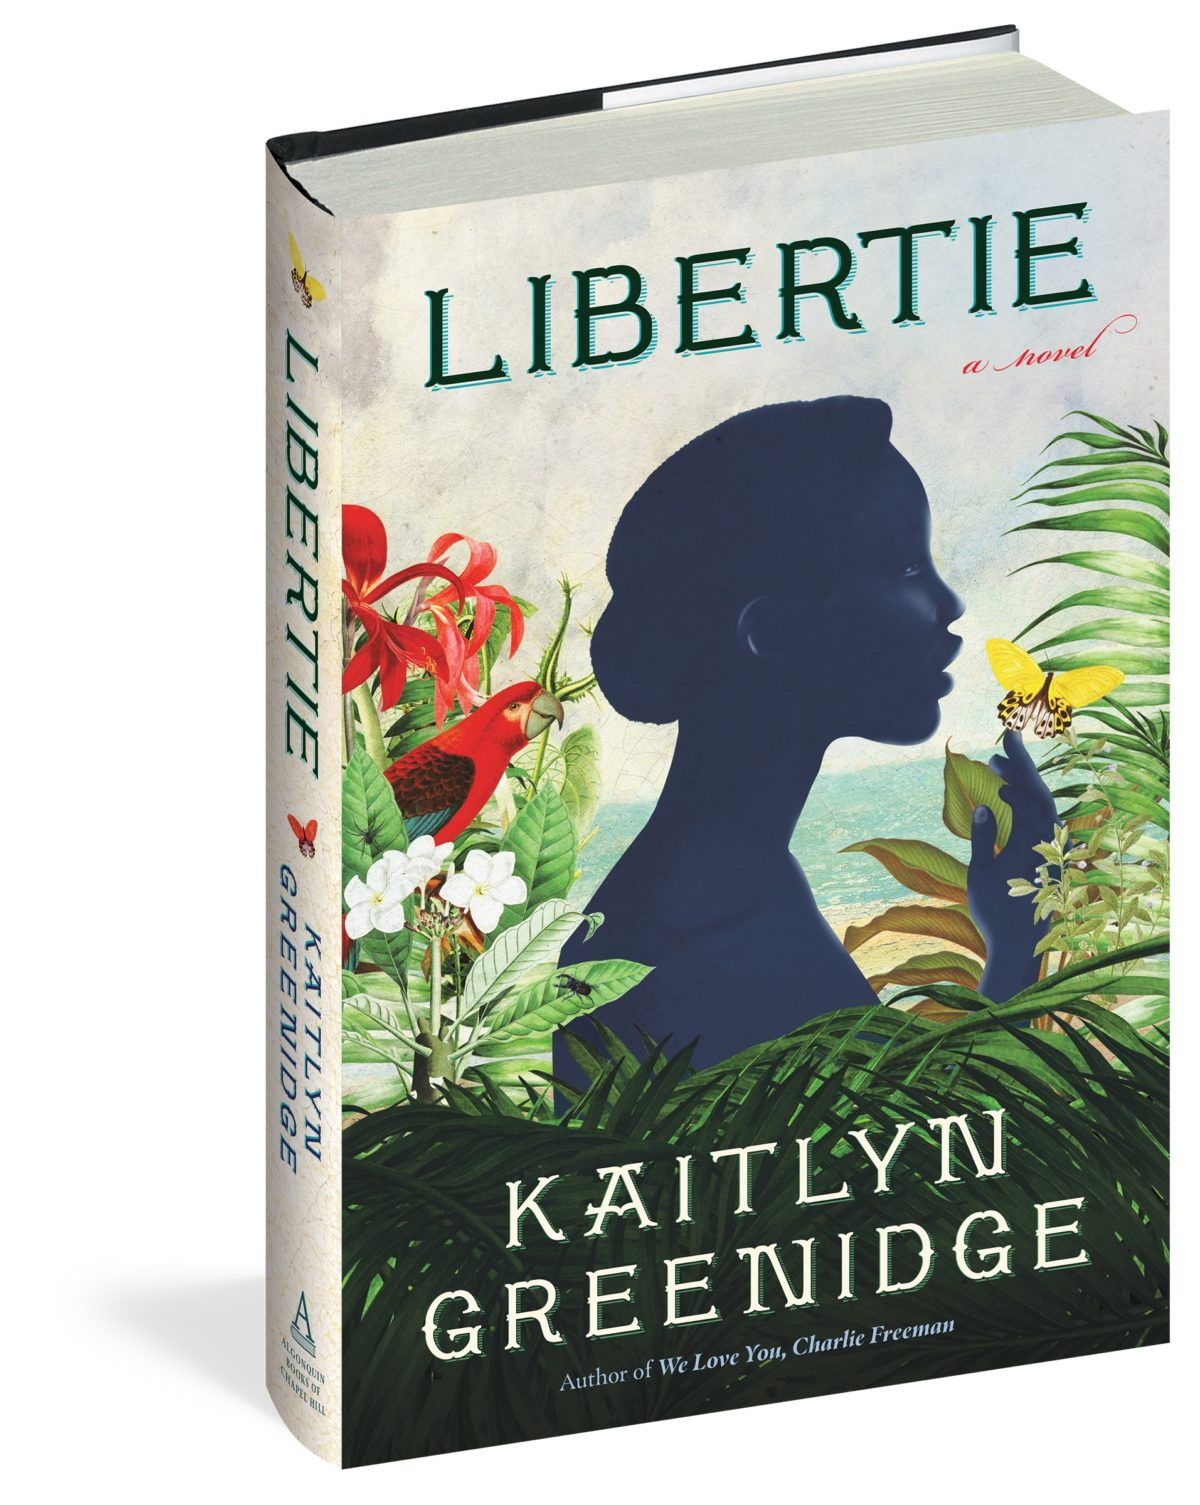 The cover of Kaitlyn Greenidge's second novel Libertie features a Black woman in profile with the flowers and foliage of Haiti surrounding her.